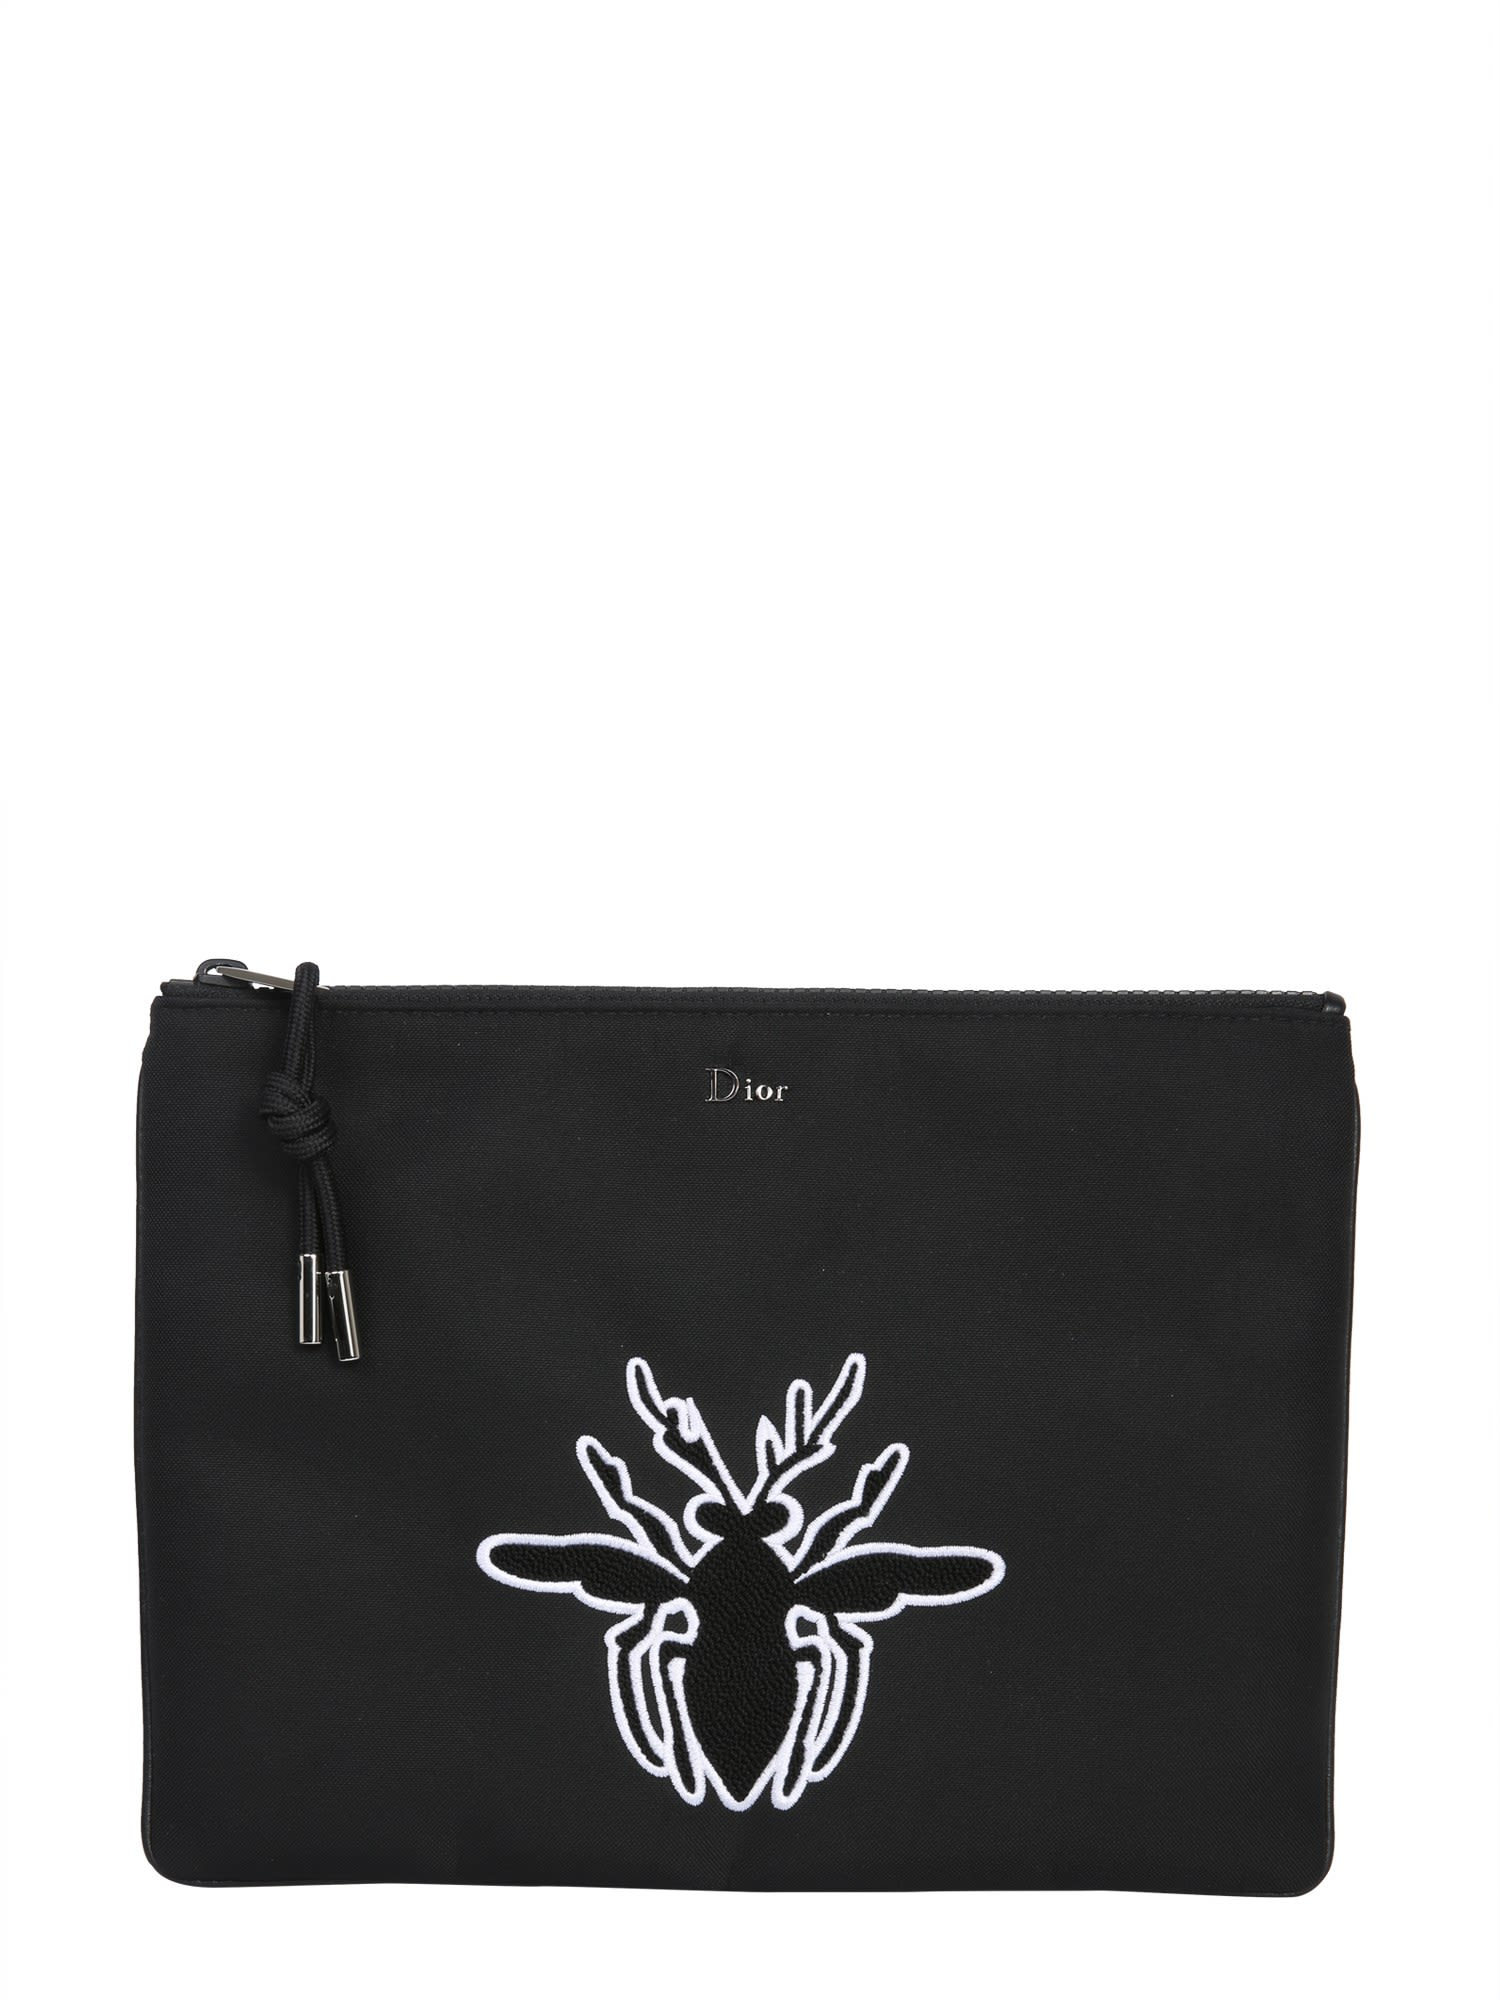 DIOR HOMME Large Clutch With Bee, Nero